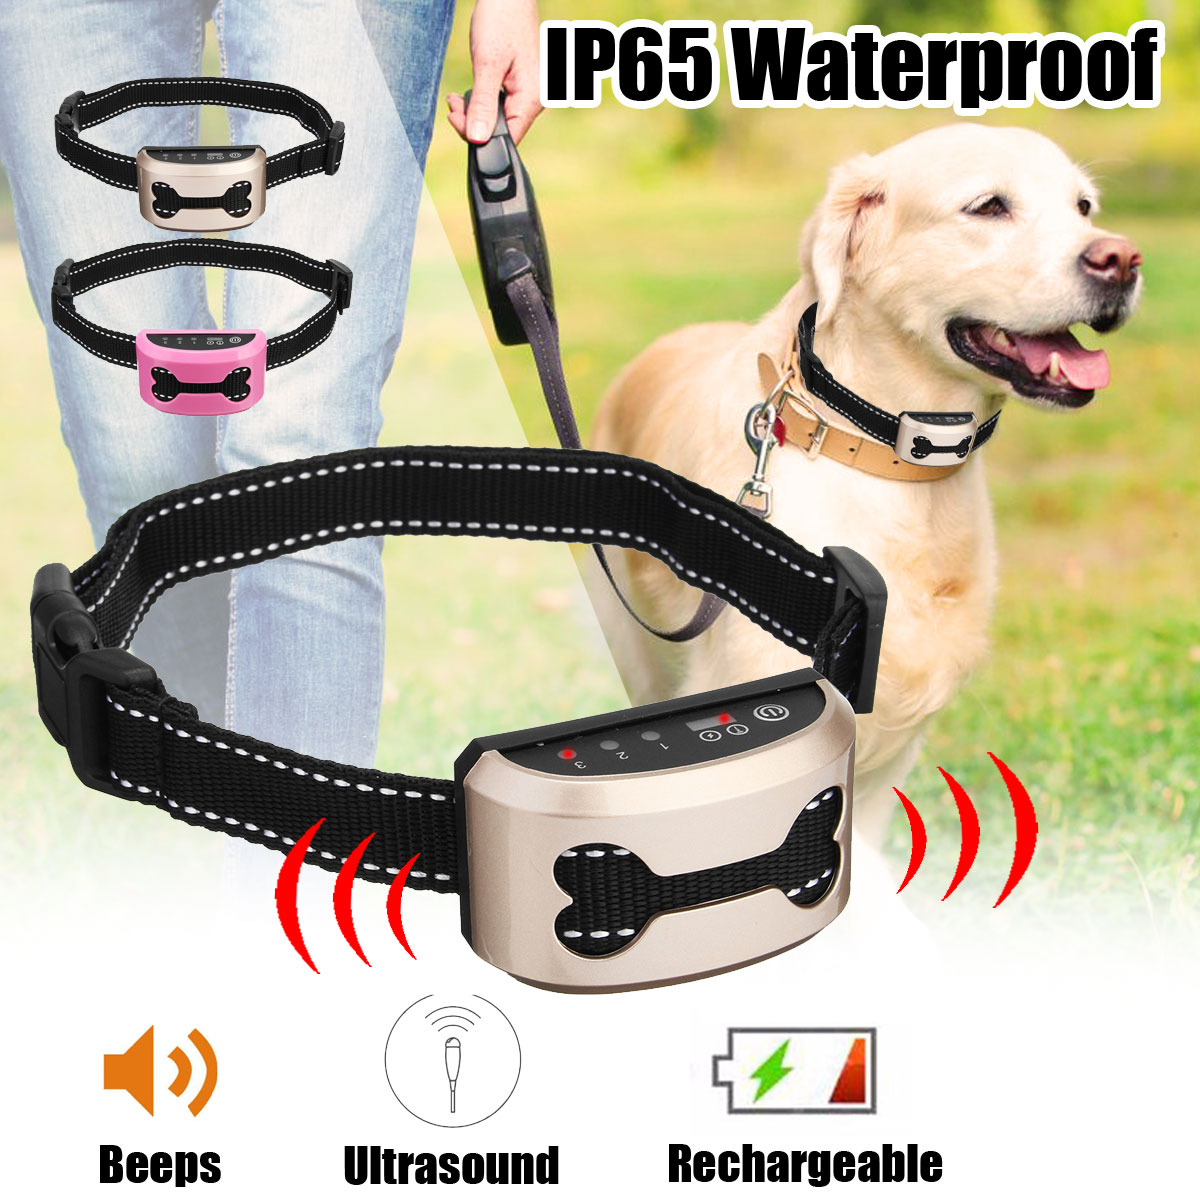 Rechargeable and Anti Bark Dog Shock Collar for Dog Training with Remote and Voice Control 5